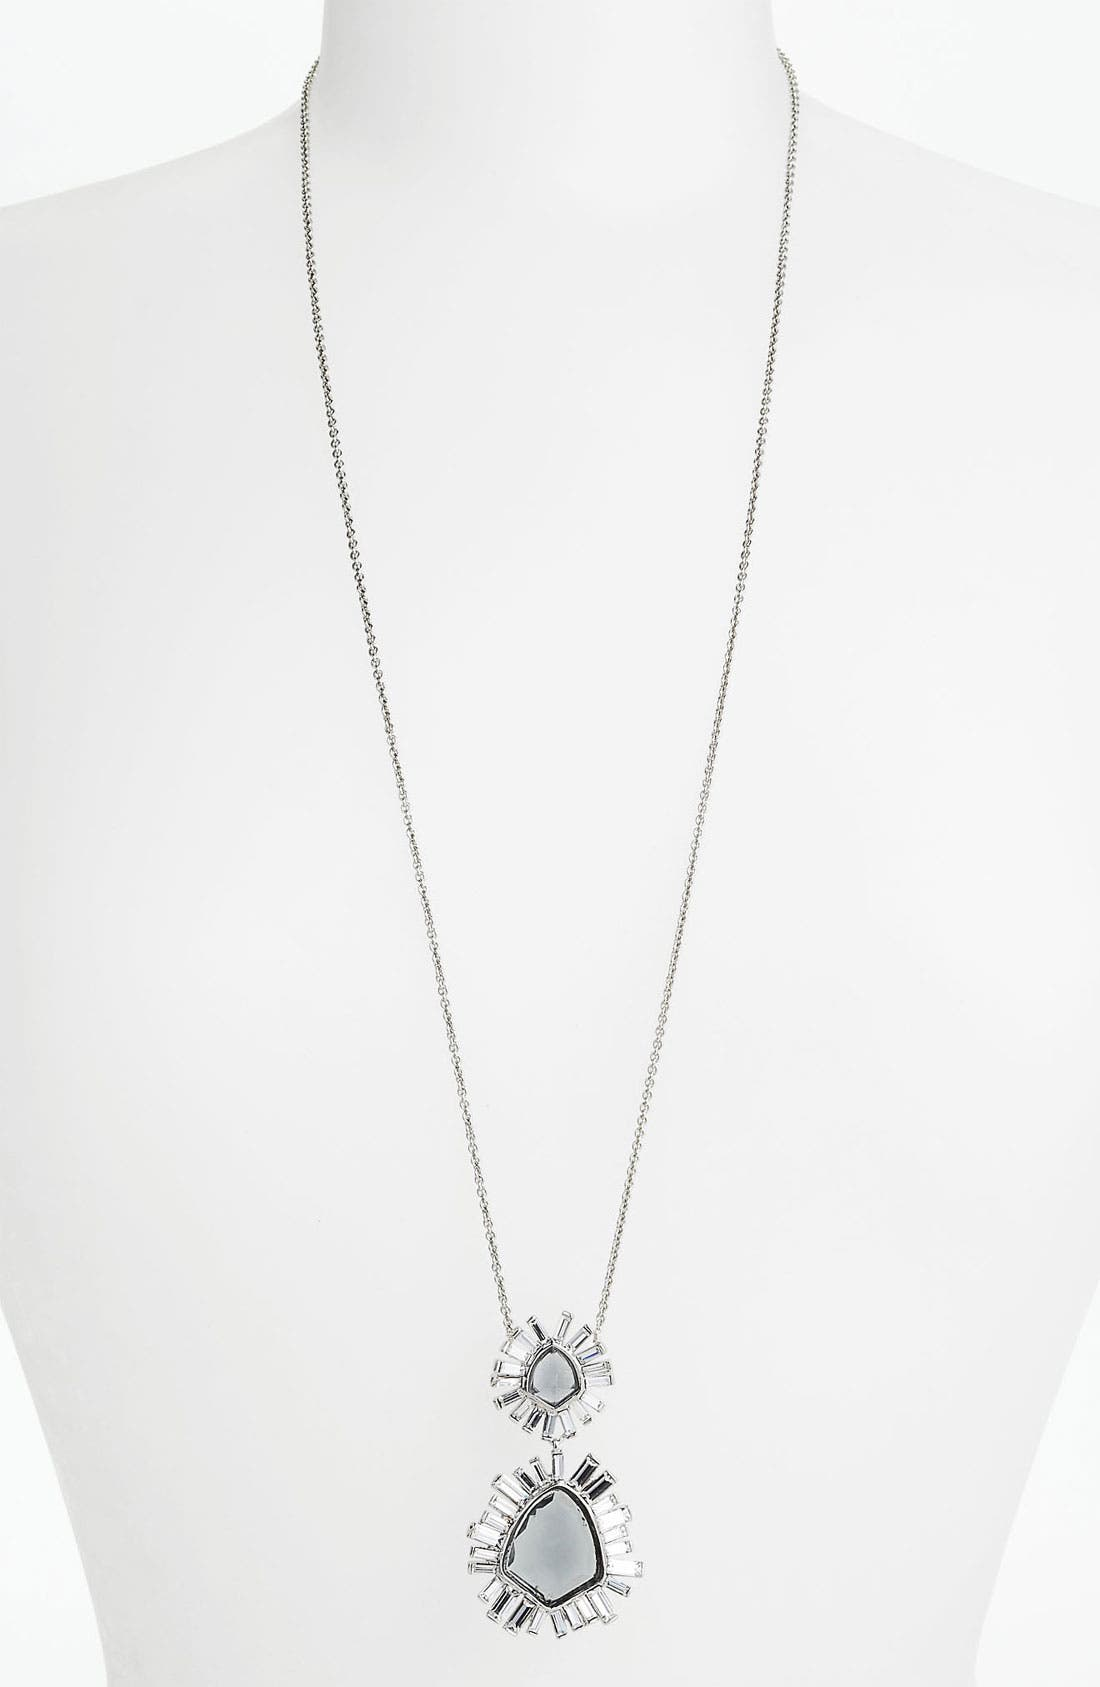 Alternate Image 1 Selected - Alexis Bittar 'Miss Havisham - Bel Air' Long Starburst Pendant Necklace